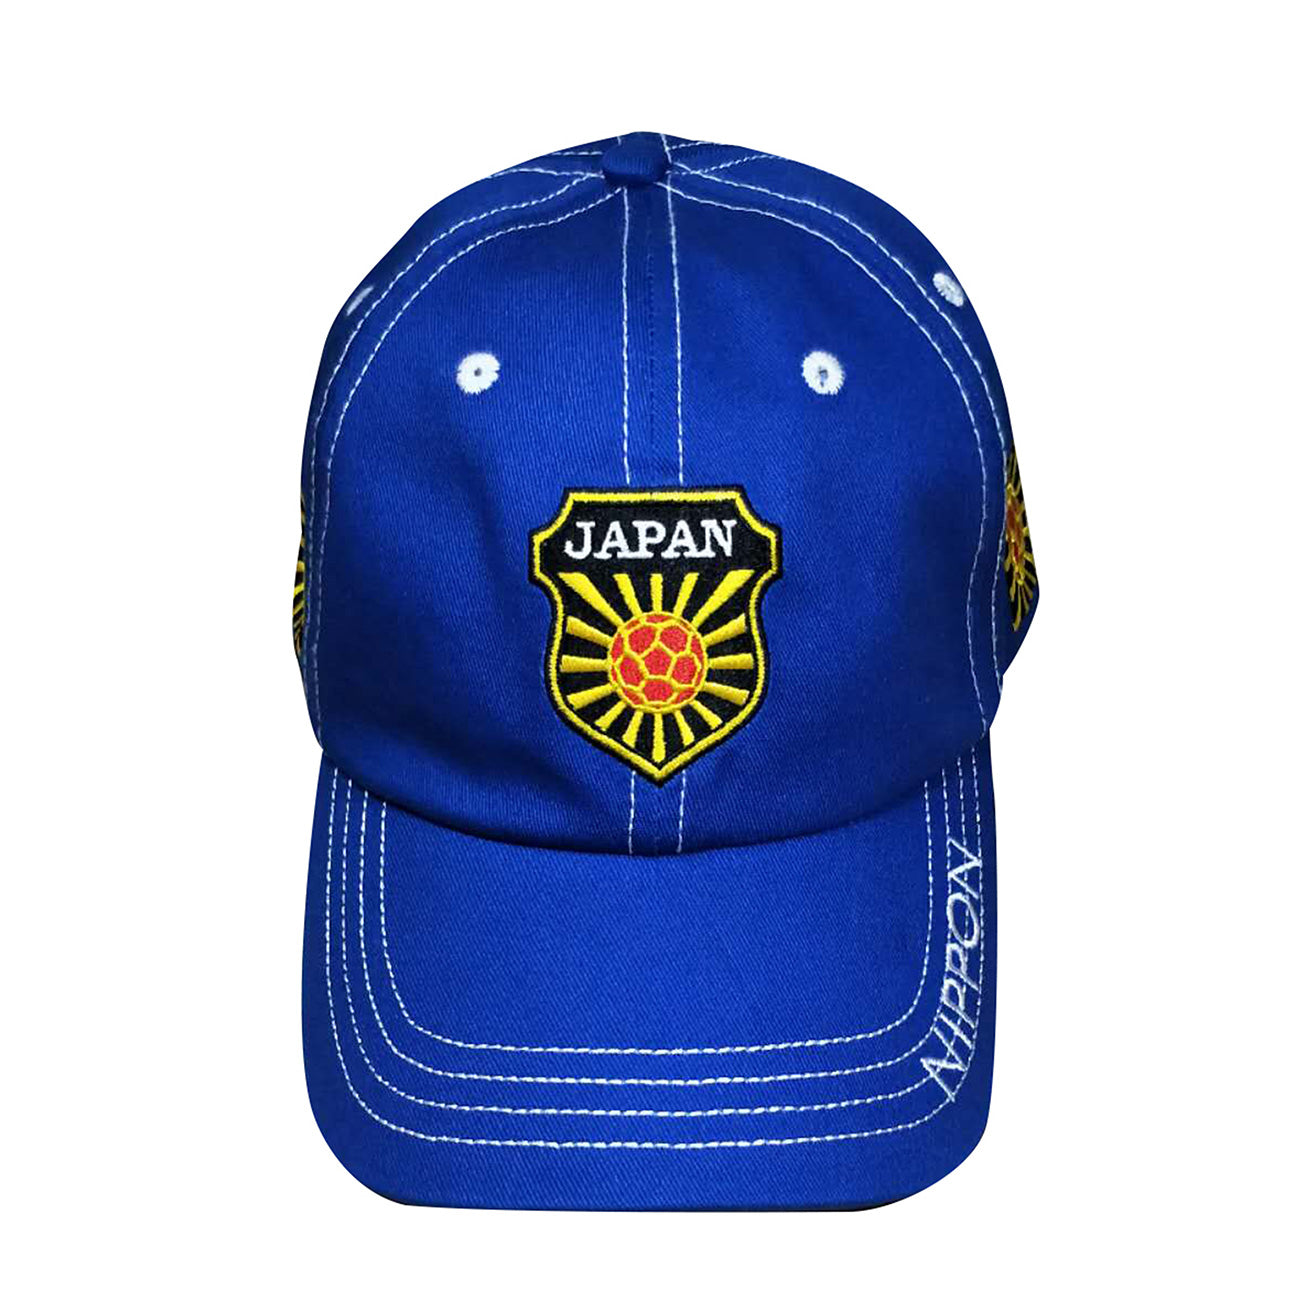 Japan World Cup Dads Cap Blue